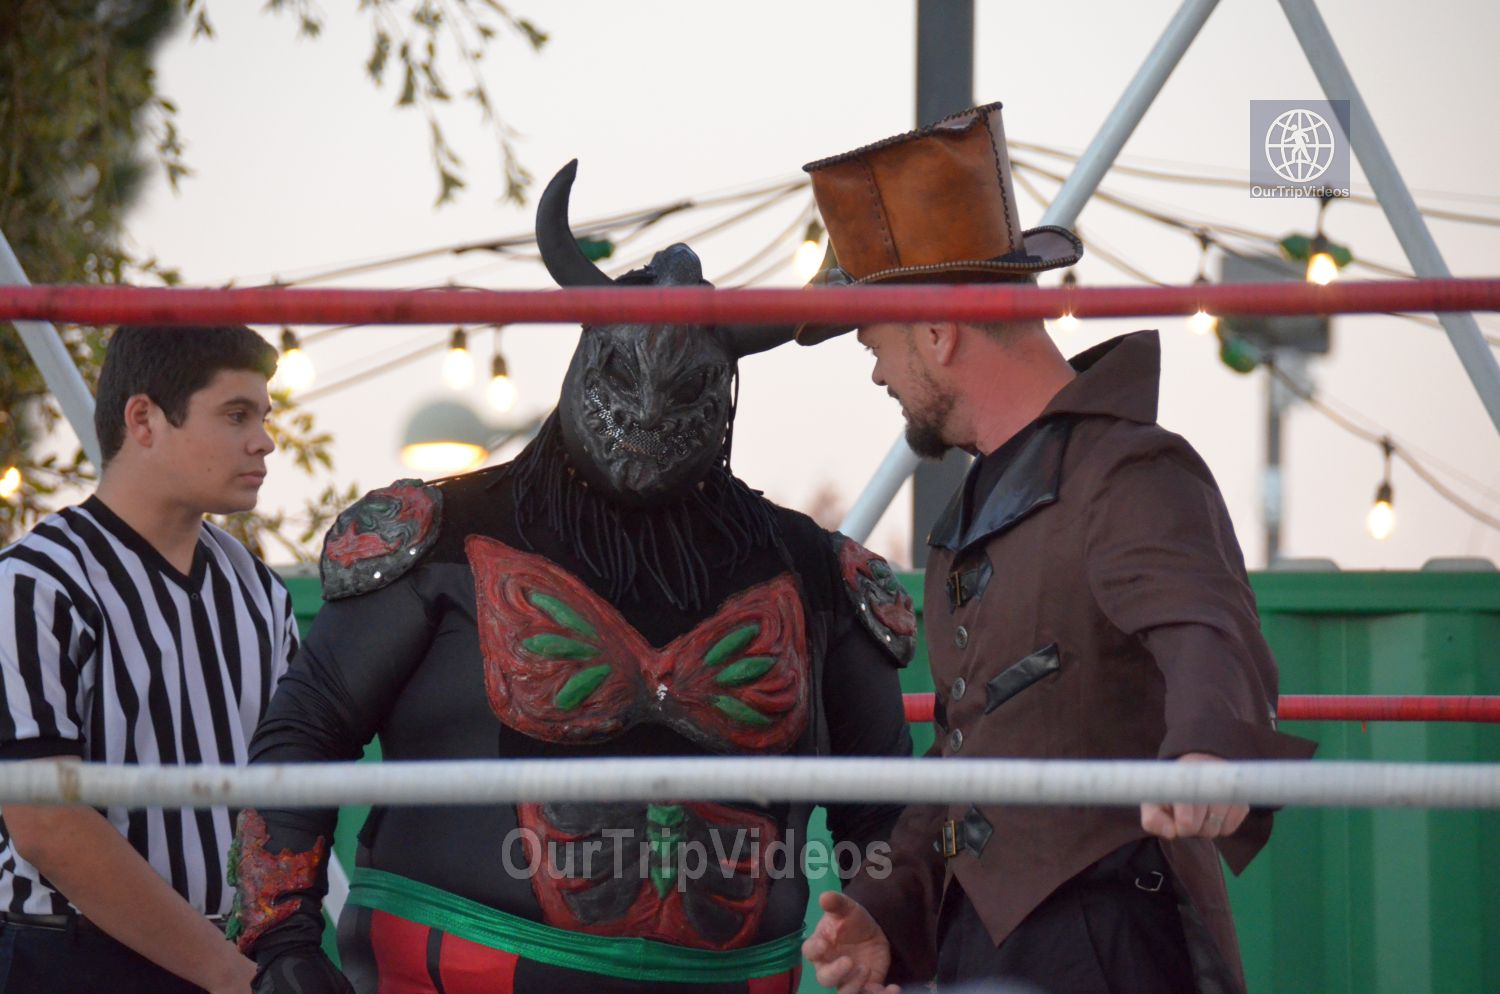 Throwdown at the Thunderdome (Luchador Wrestling), Fremont, CA, USA - Picture 2 of 25